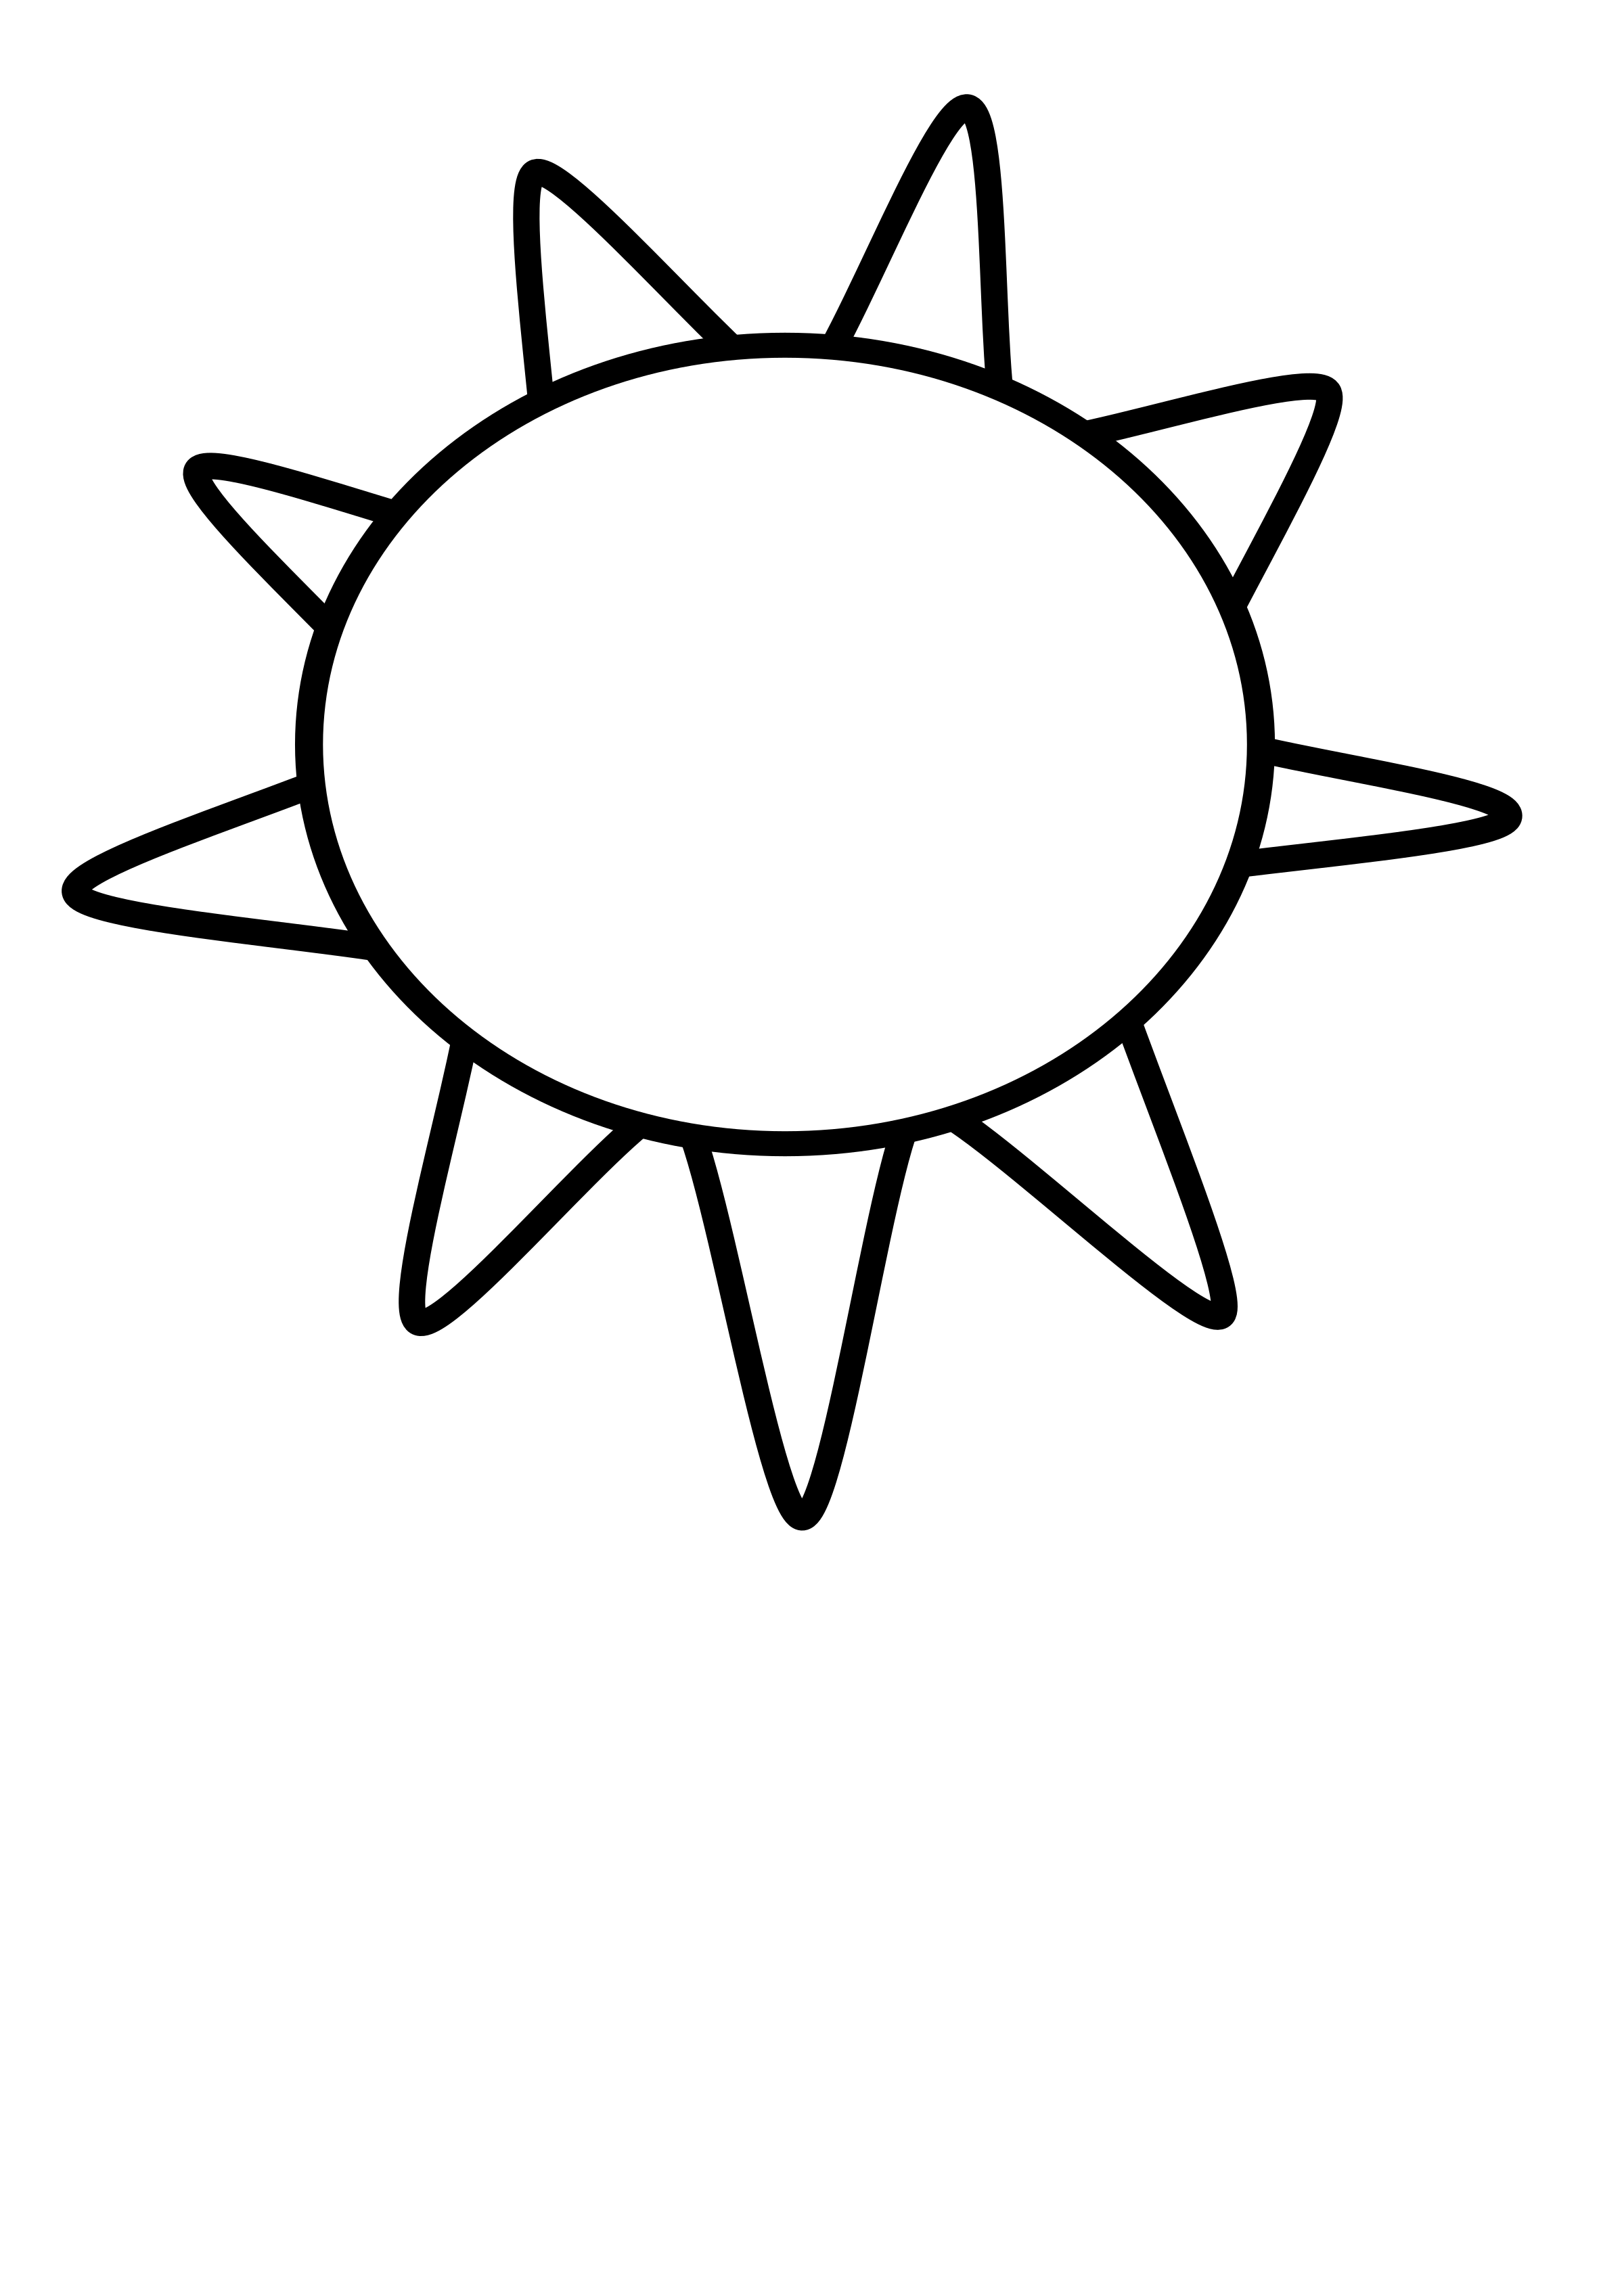 Full circle sun ray clipart black and white svg stock Sun Black And White | Free download best Sun Black And White on ... svg stock